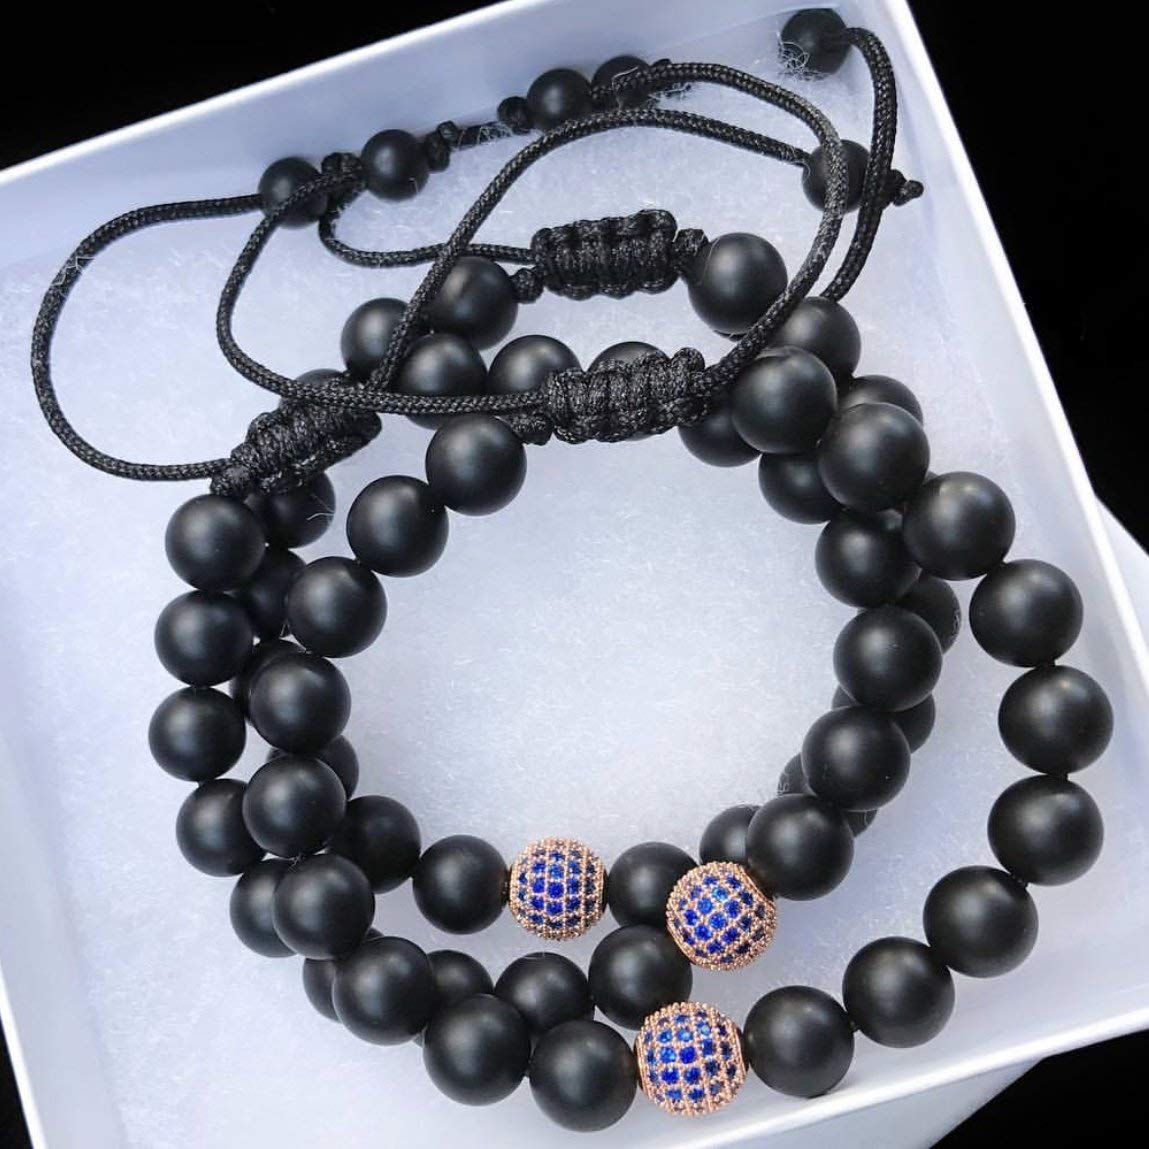 Handmade Macrame Bead Bracelet, Natural 8mm Matte Black Onyx Beads, 8mm Rose Gold Round Pave Bead, Capri Blue CZ Pave Disco Ball Bead, Men and Women Bracelets